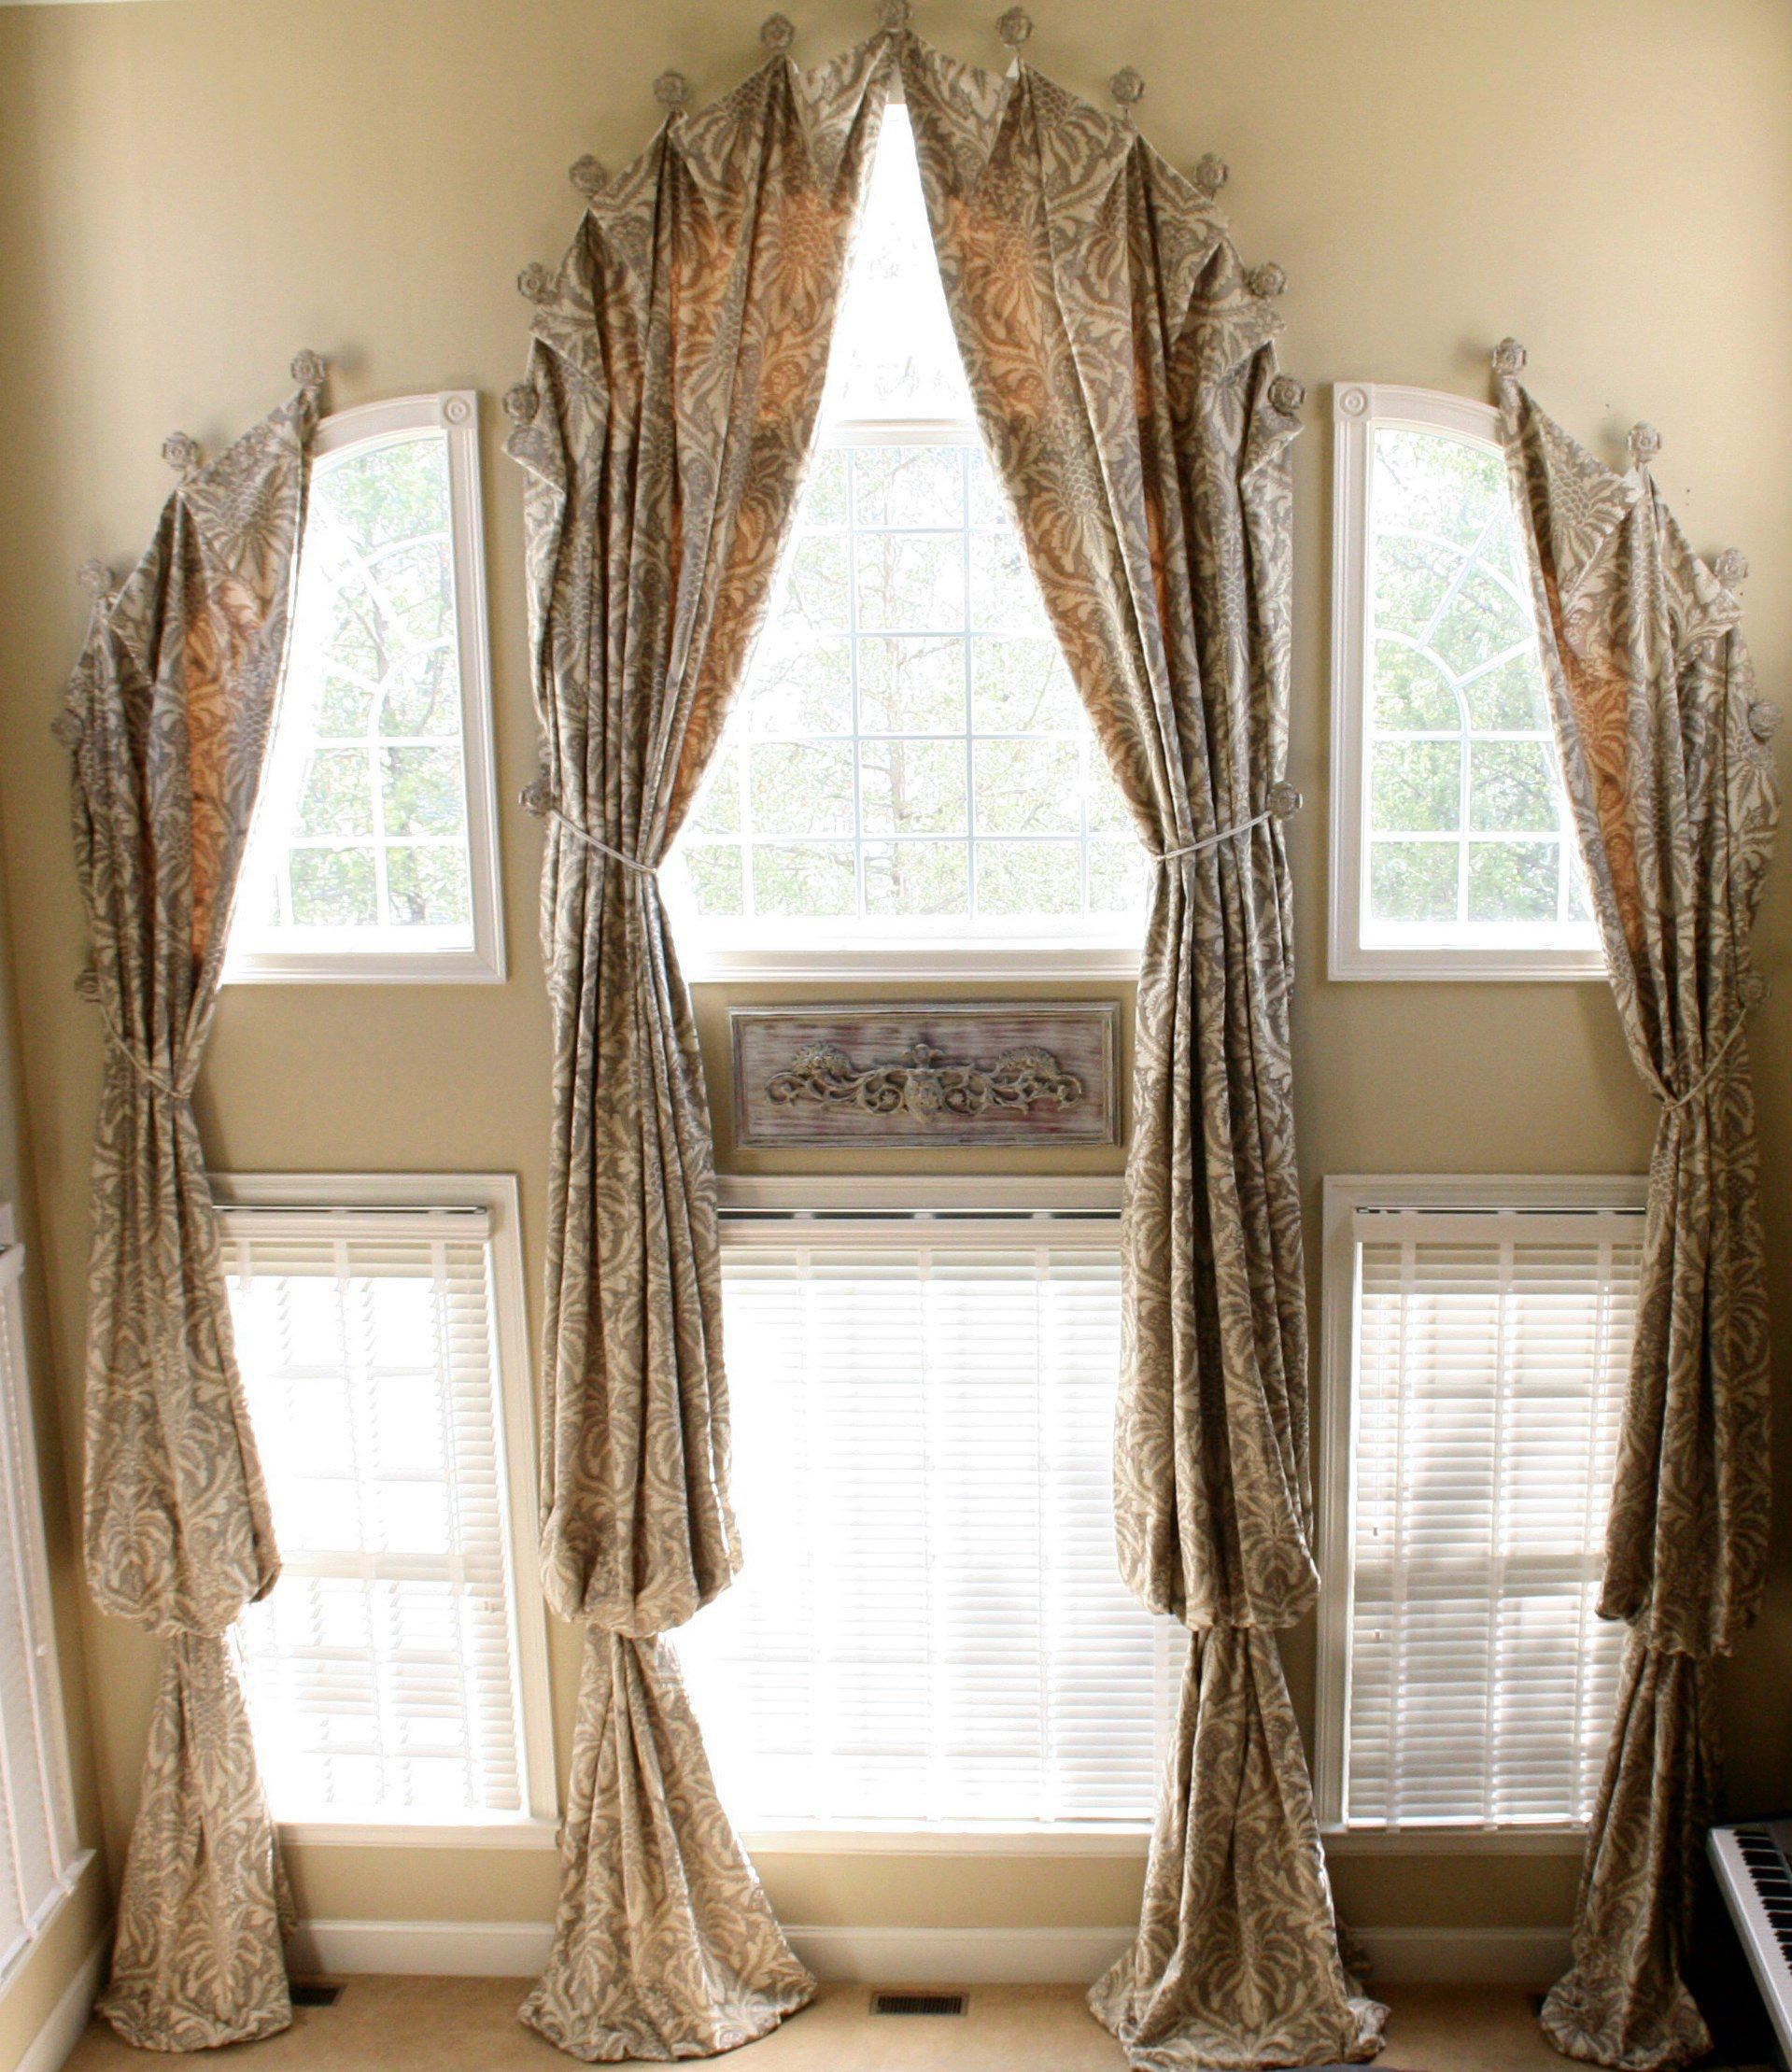 Window Treatment Design Ideas 1000 ideas about bay window treatments on pinterest window treatments bay windows and bay window curtains Arched Window Treatments Patterns